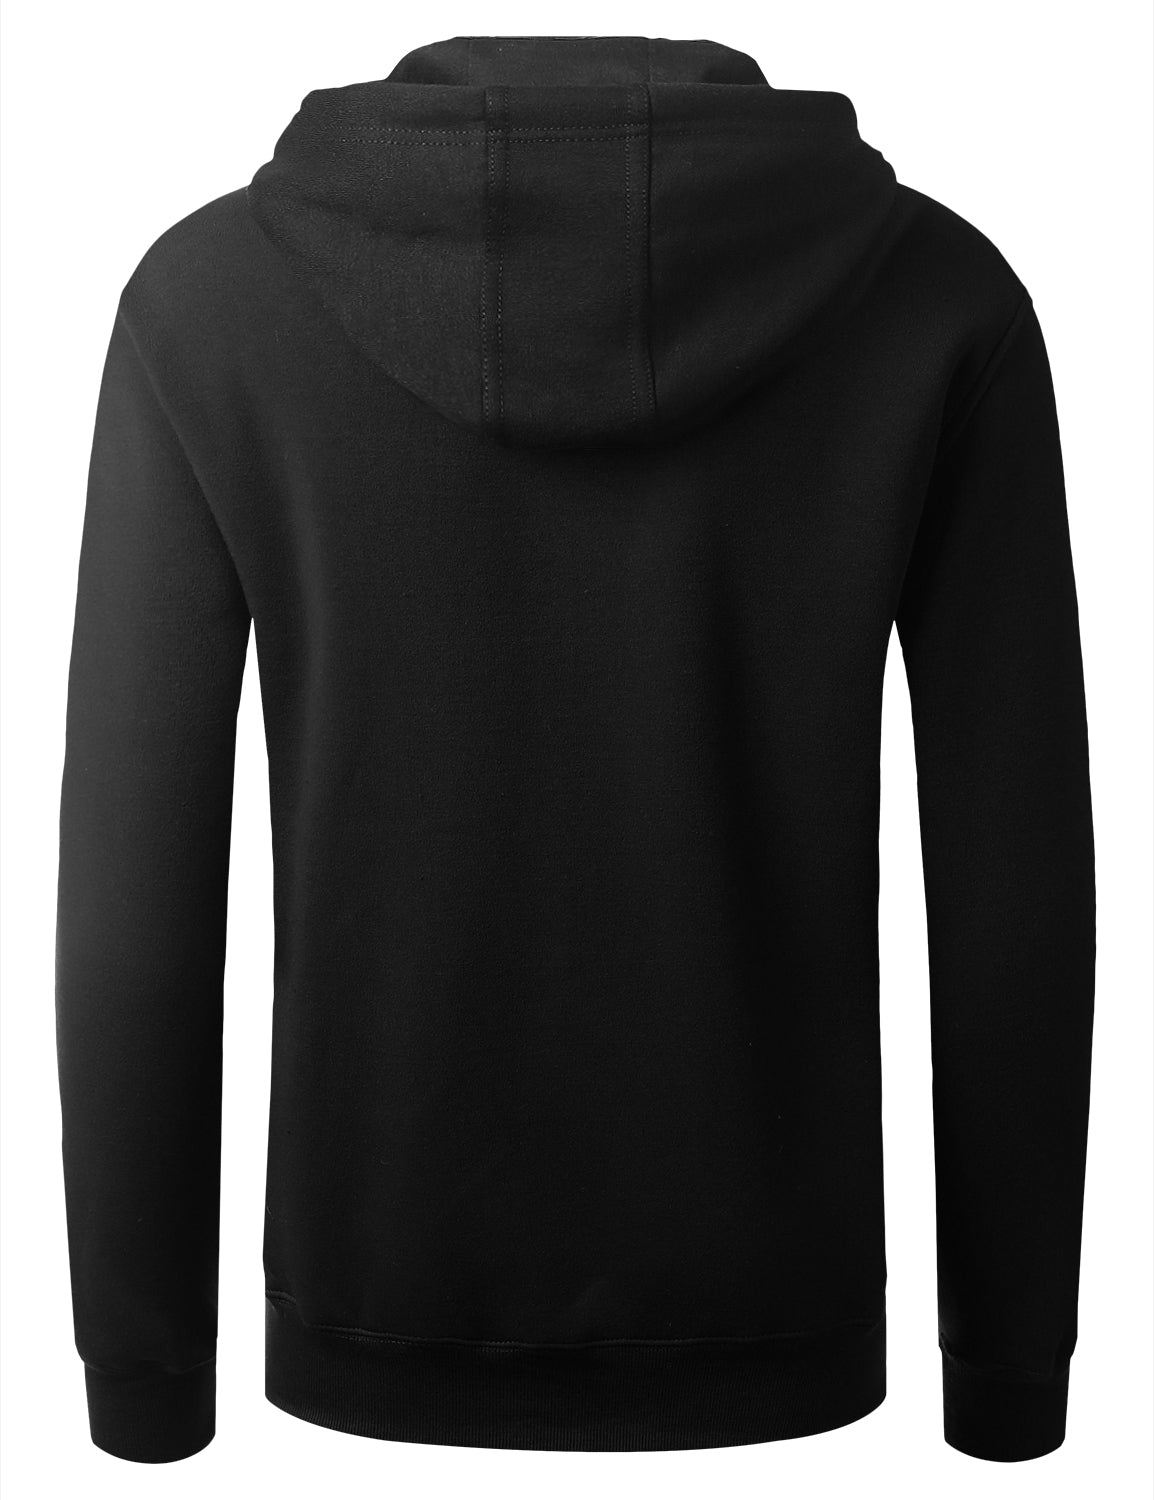 BULLBLACK Embossed Bull Graphic Fleece Pullover Hoodie - URBANCREWS